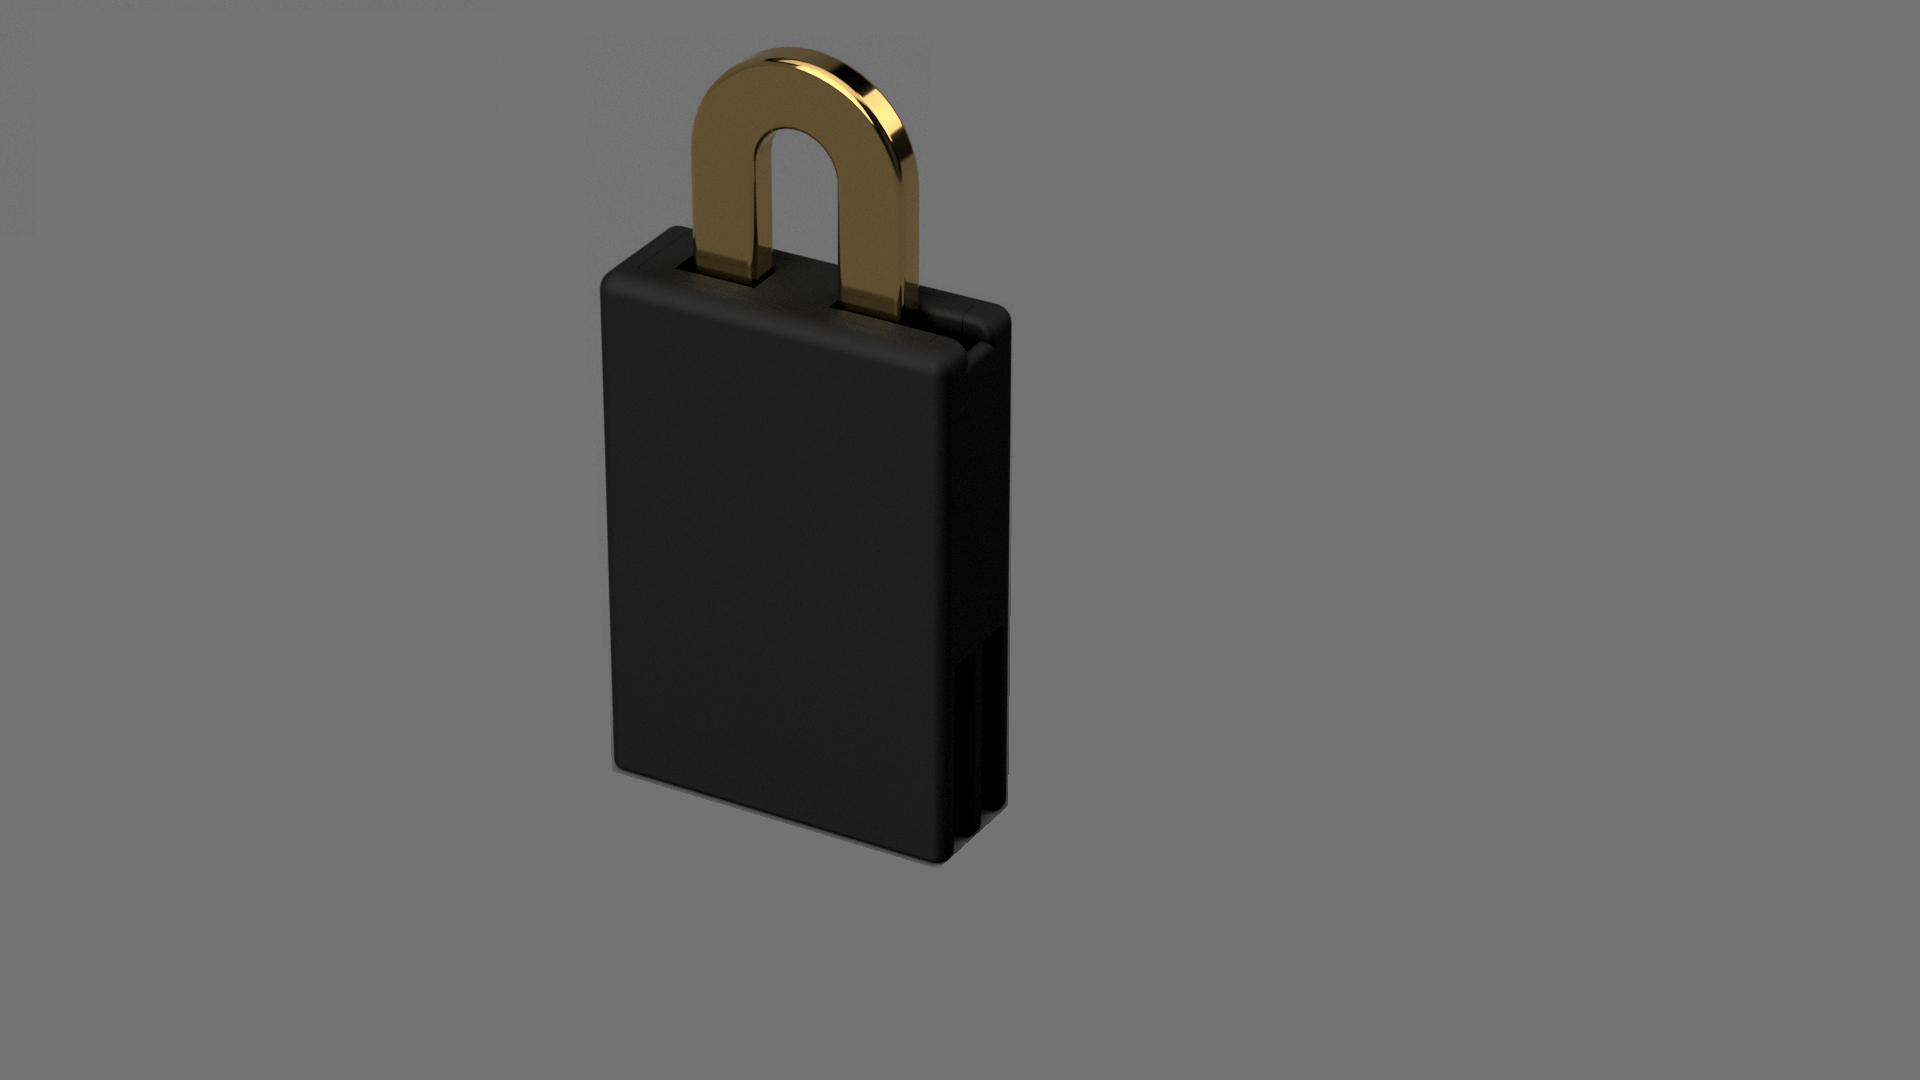 3D Printed The Puzzle Lockevolvingextrusions | Pinshape - 3D Print Puzzle Lock